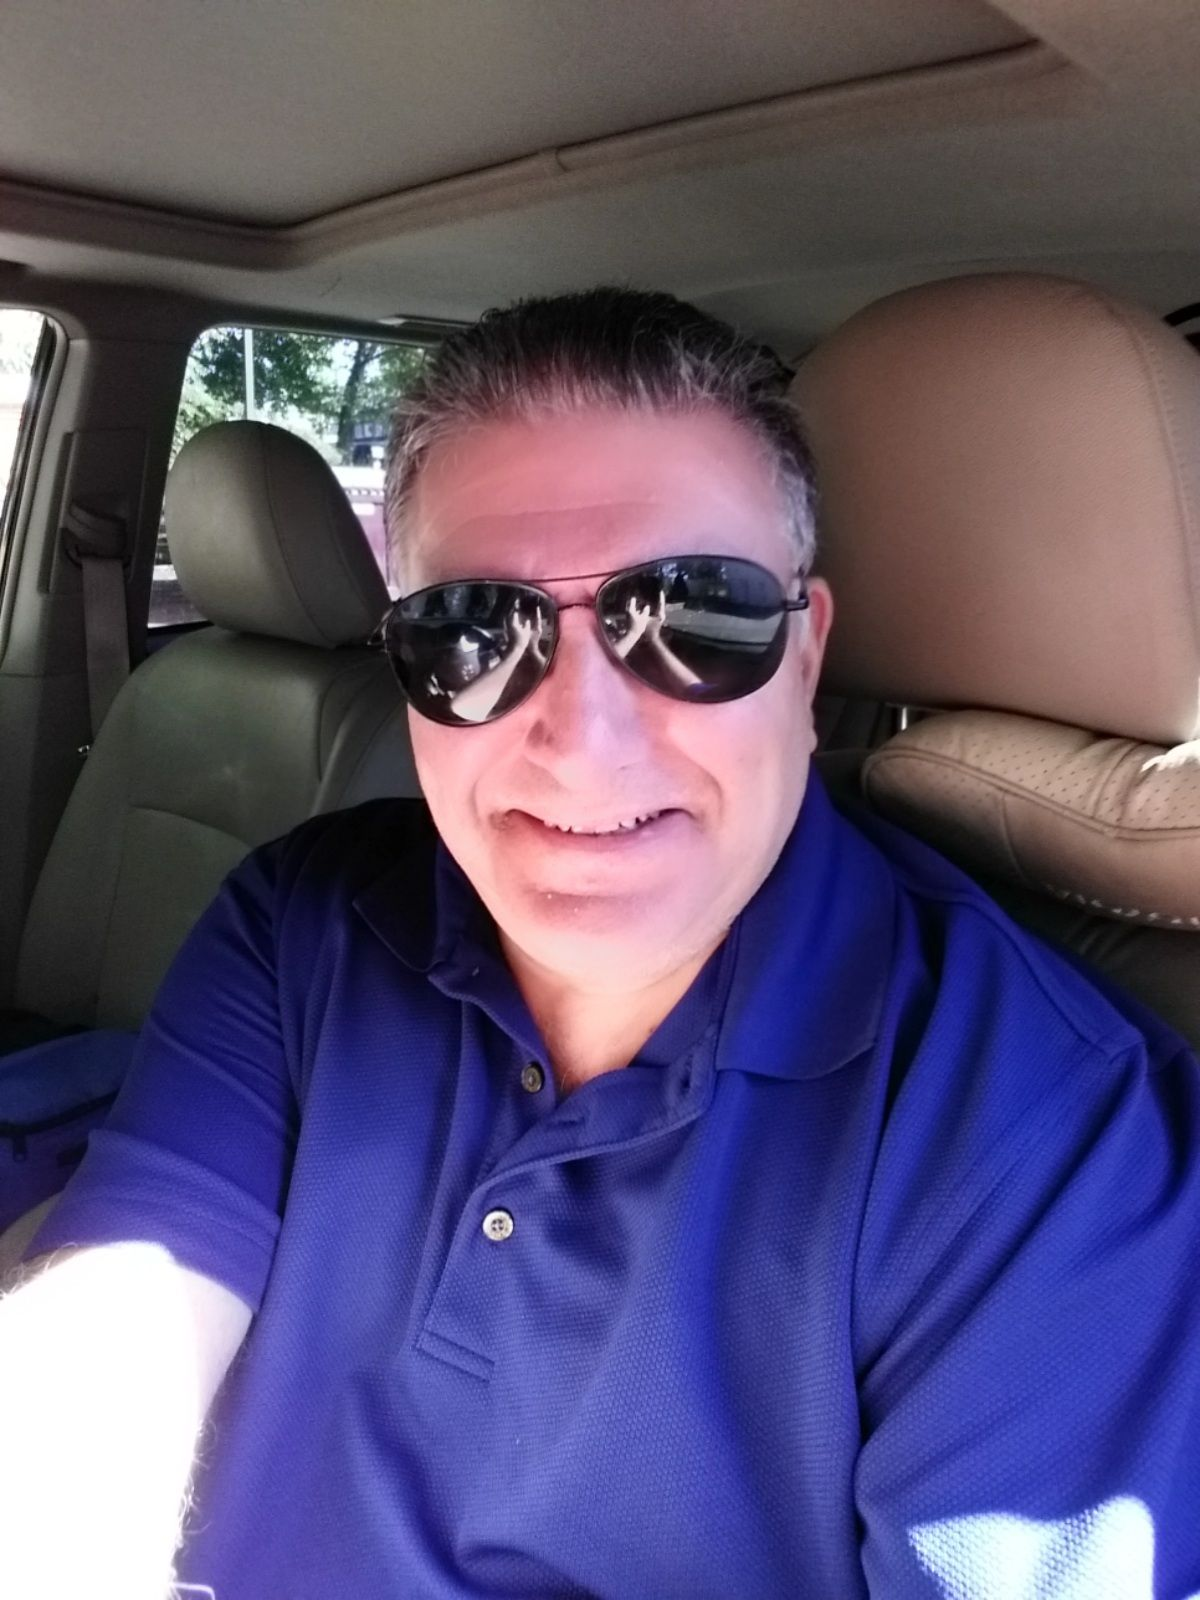 meet ralph singles Welcome glass city singles, toledo's singles, area to meet other singe in complete safty, your information source and interactive meeting place for the singles.